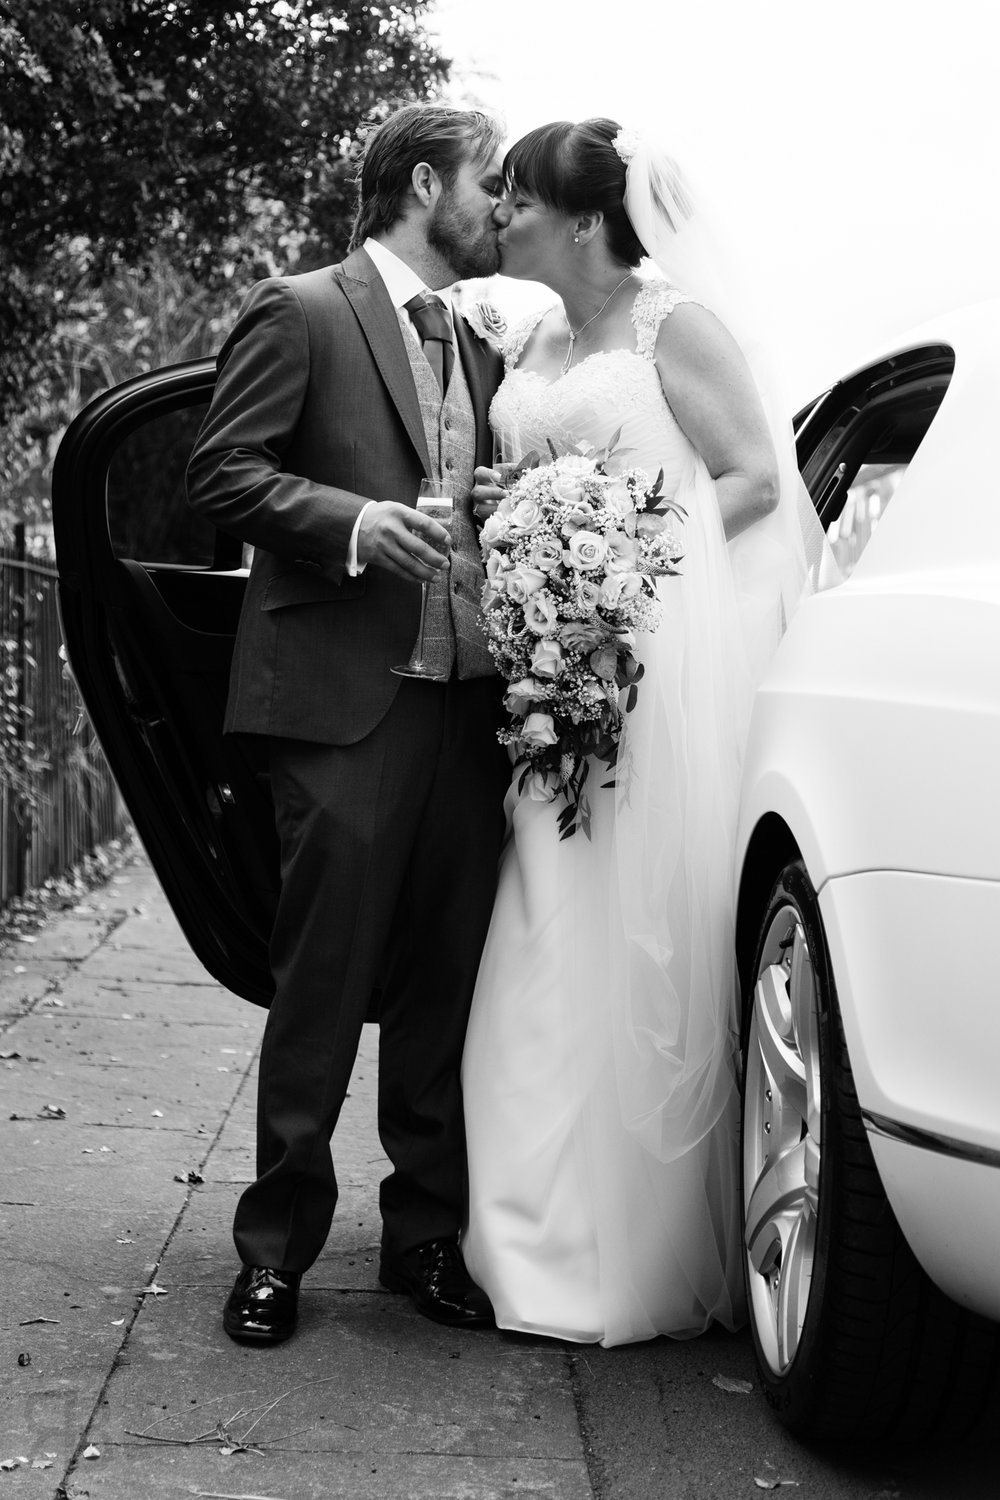 Mr & Mrs Charnock - Wedding Day 14th Oct 2017